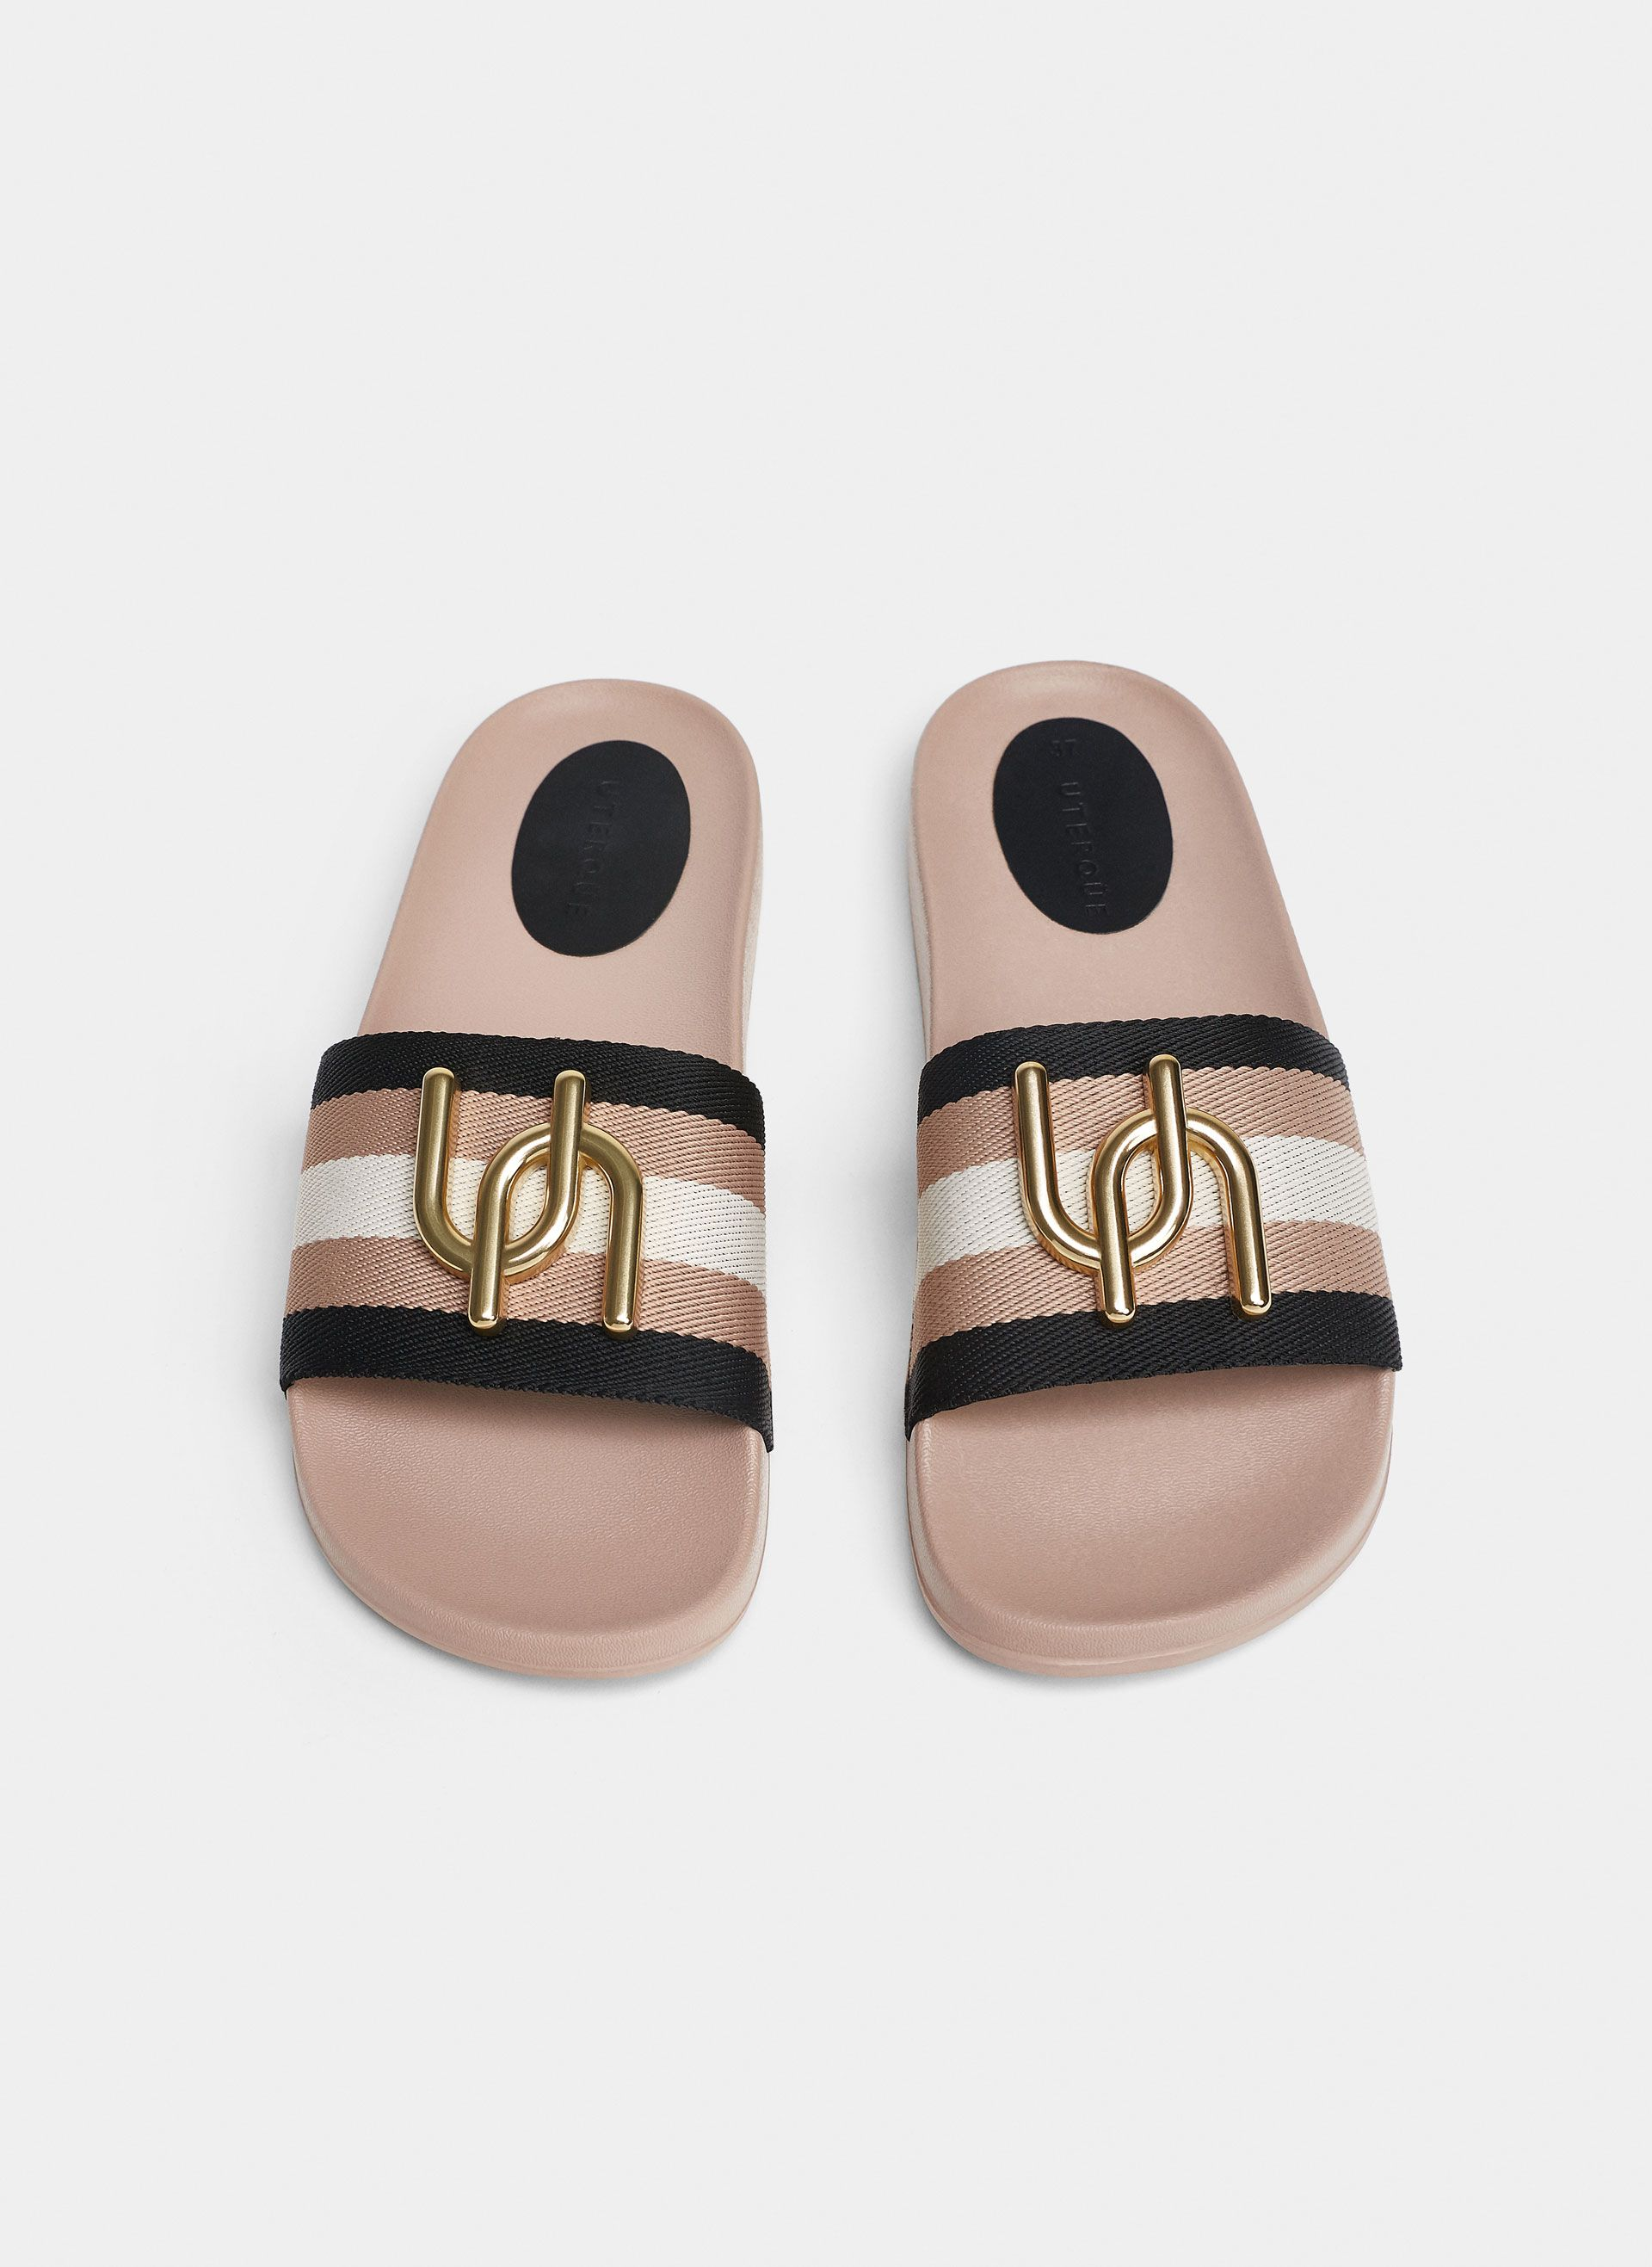 0943eb3f5 Uterqüe United Kingdom Product Page - Footwear - View all - Striped slides  with logo detail - 59